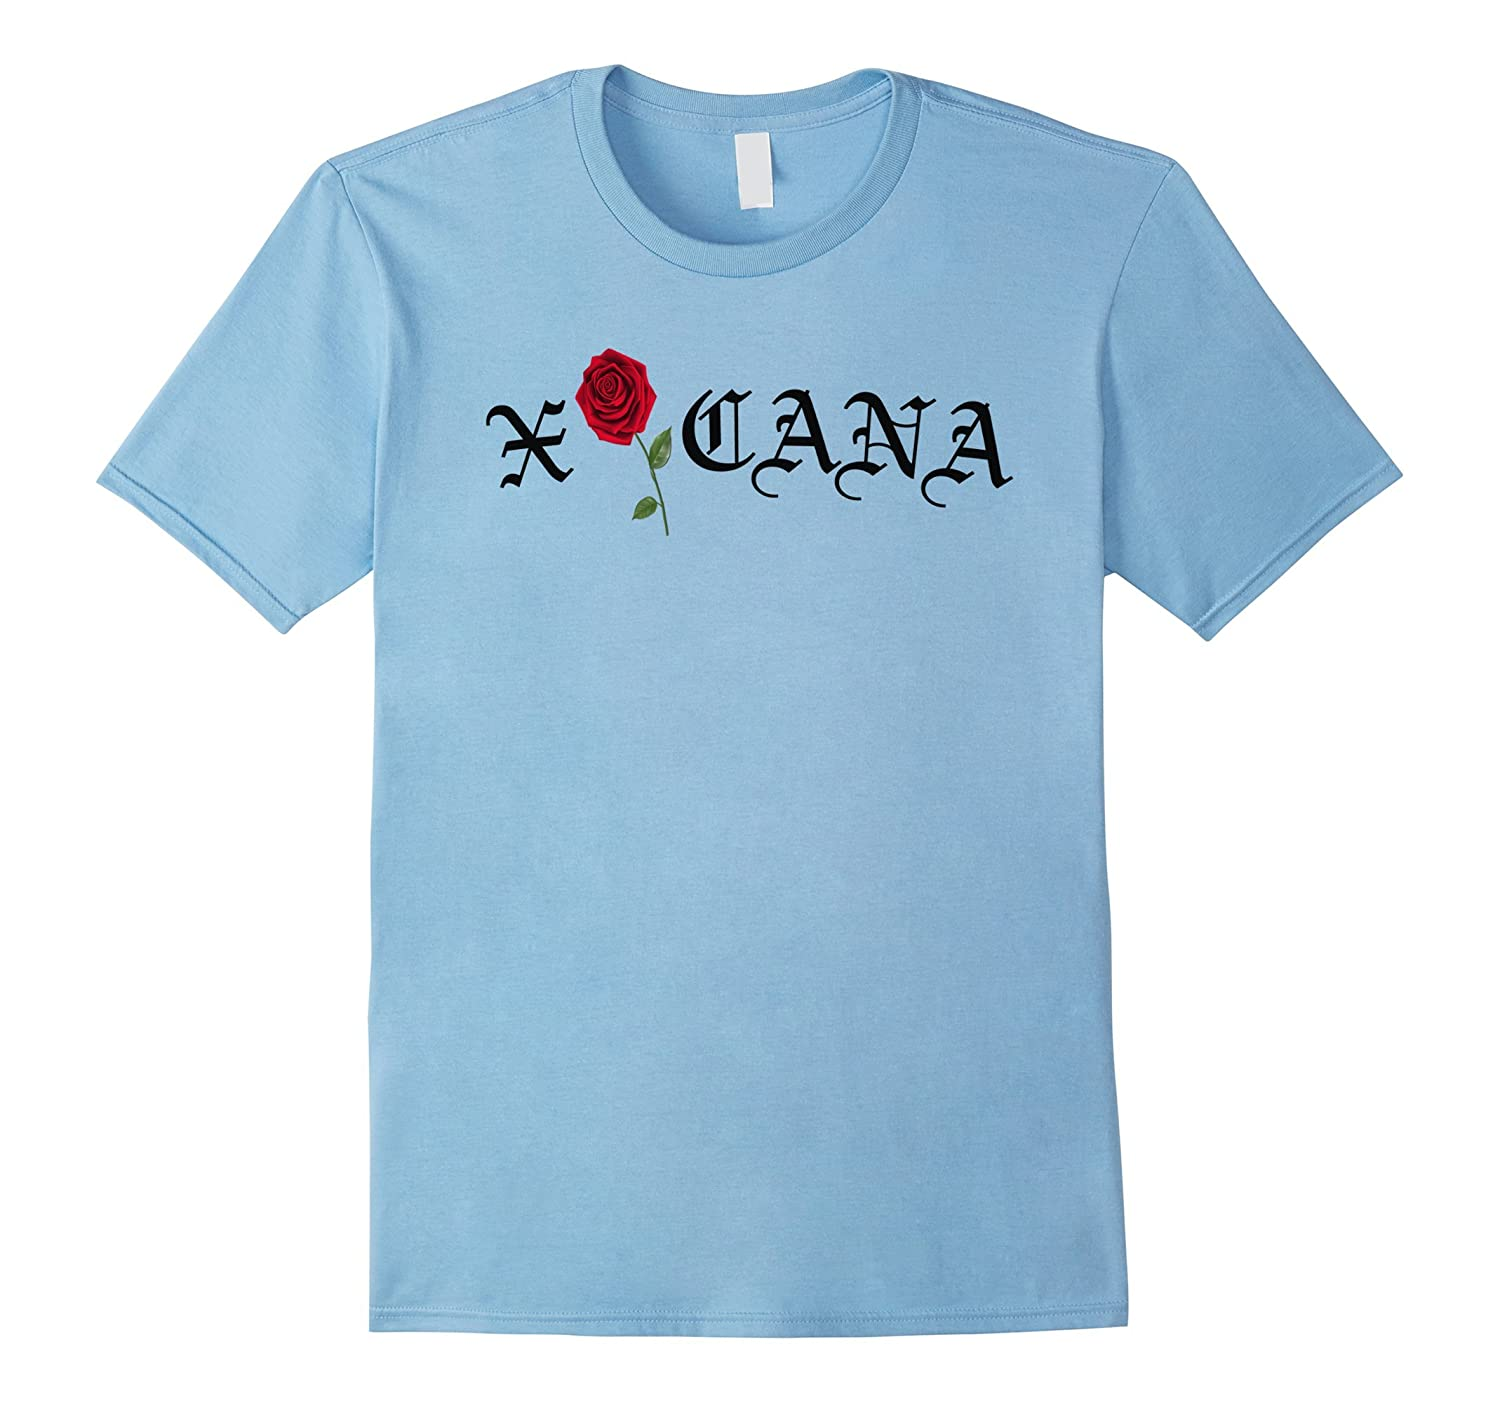 Chicana Xicana Pride T-shirt-Art